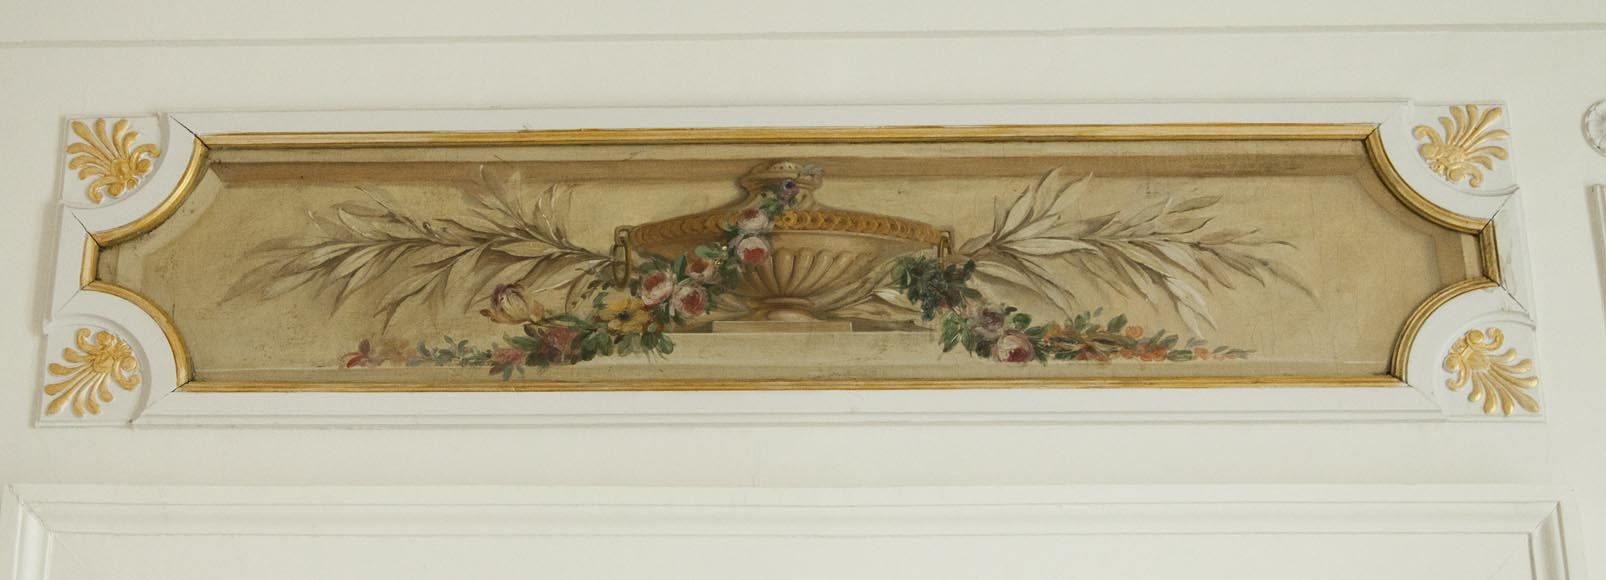 Set of painted wood panels decorated with vases and garlands of flowers.-2